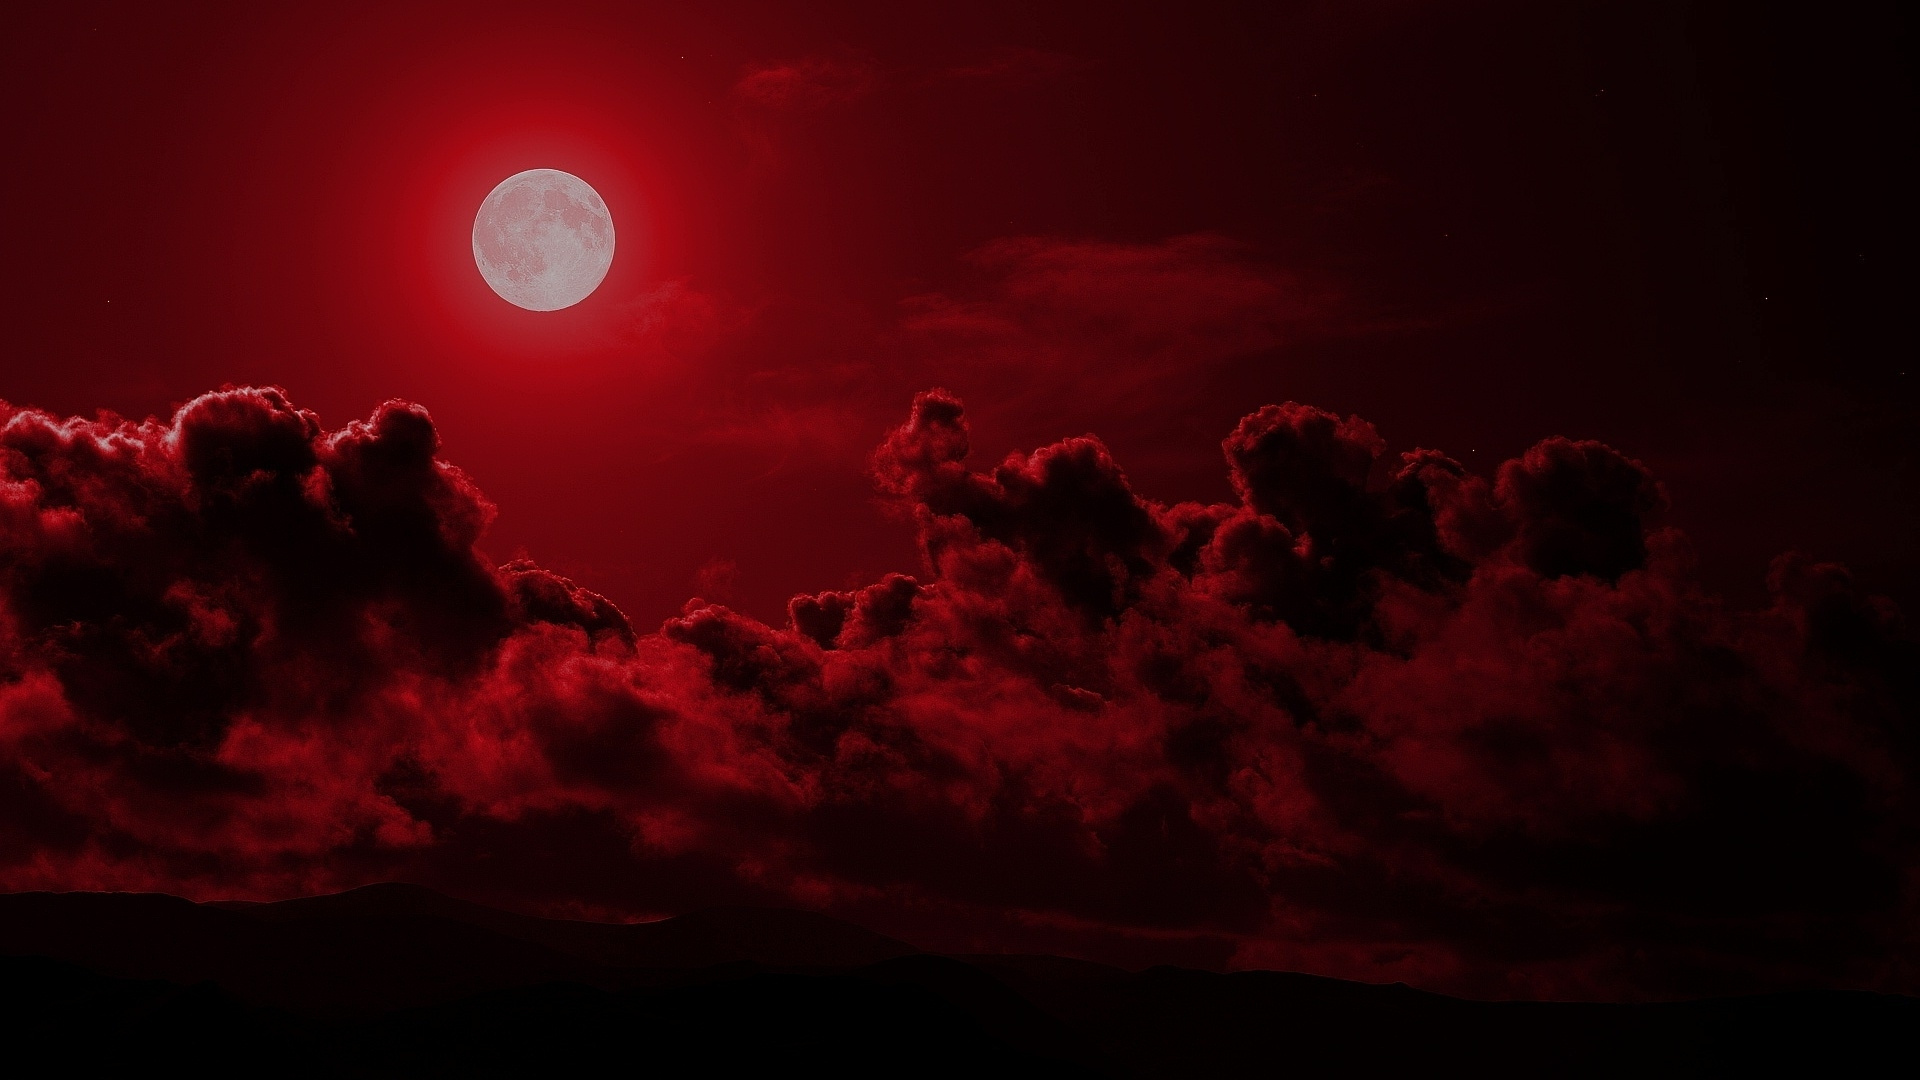 red moon wallpaper hd | pixelstalk